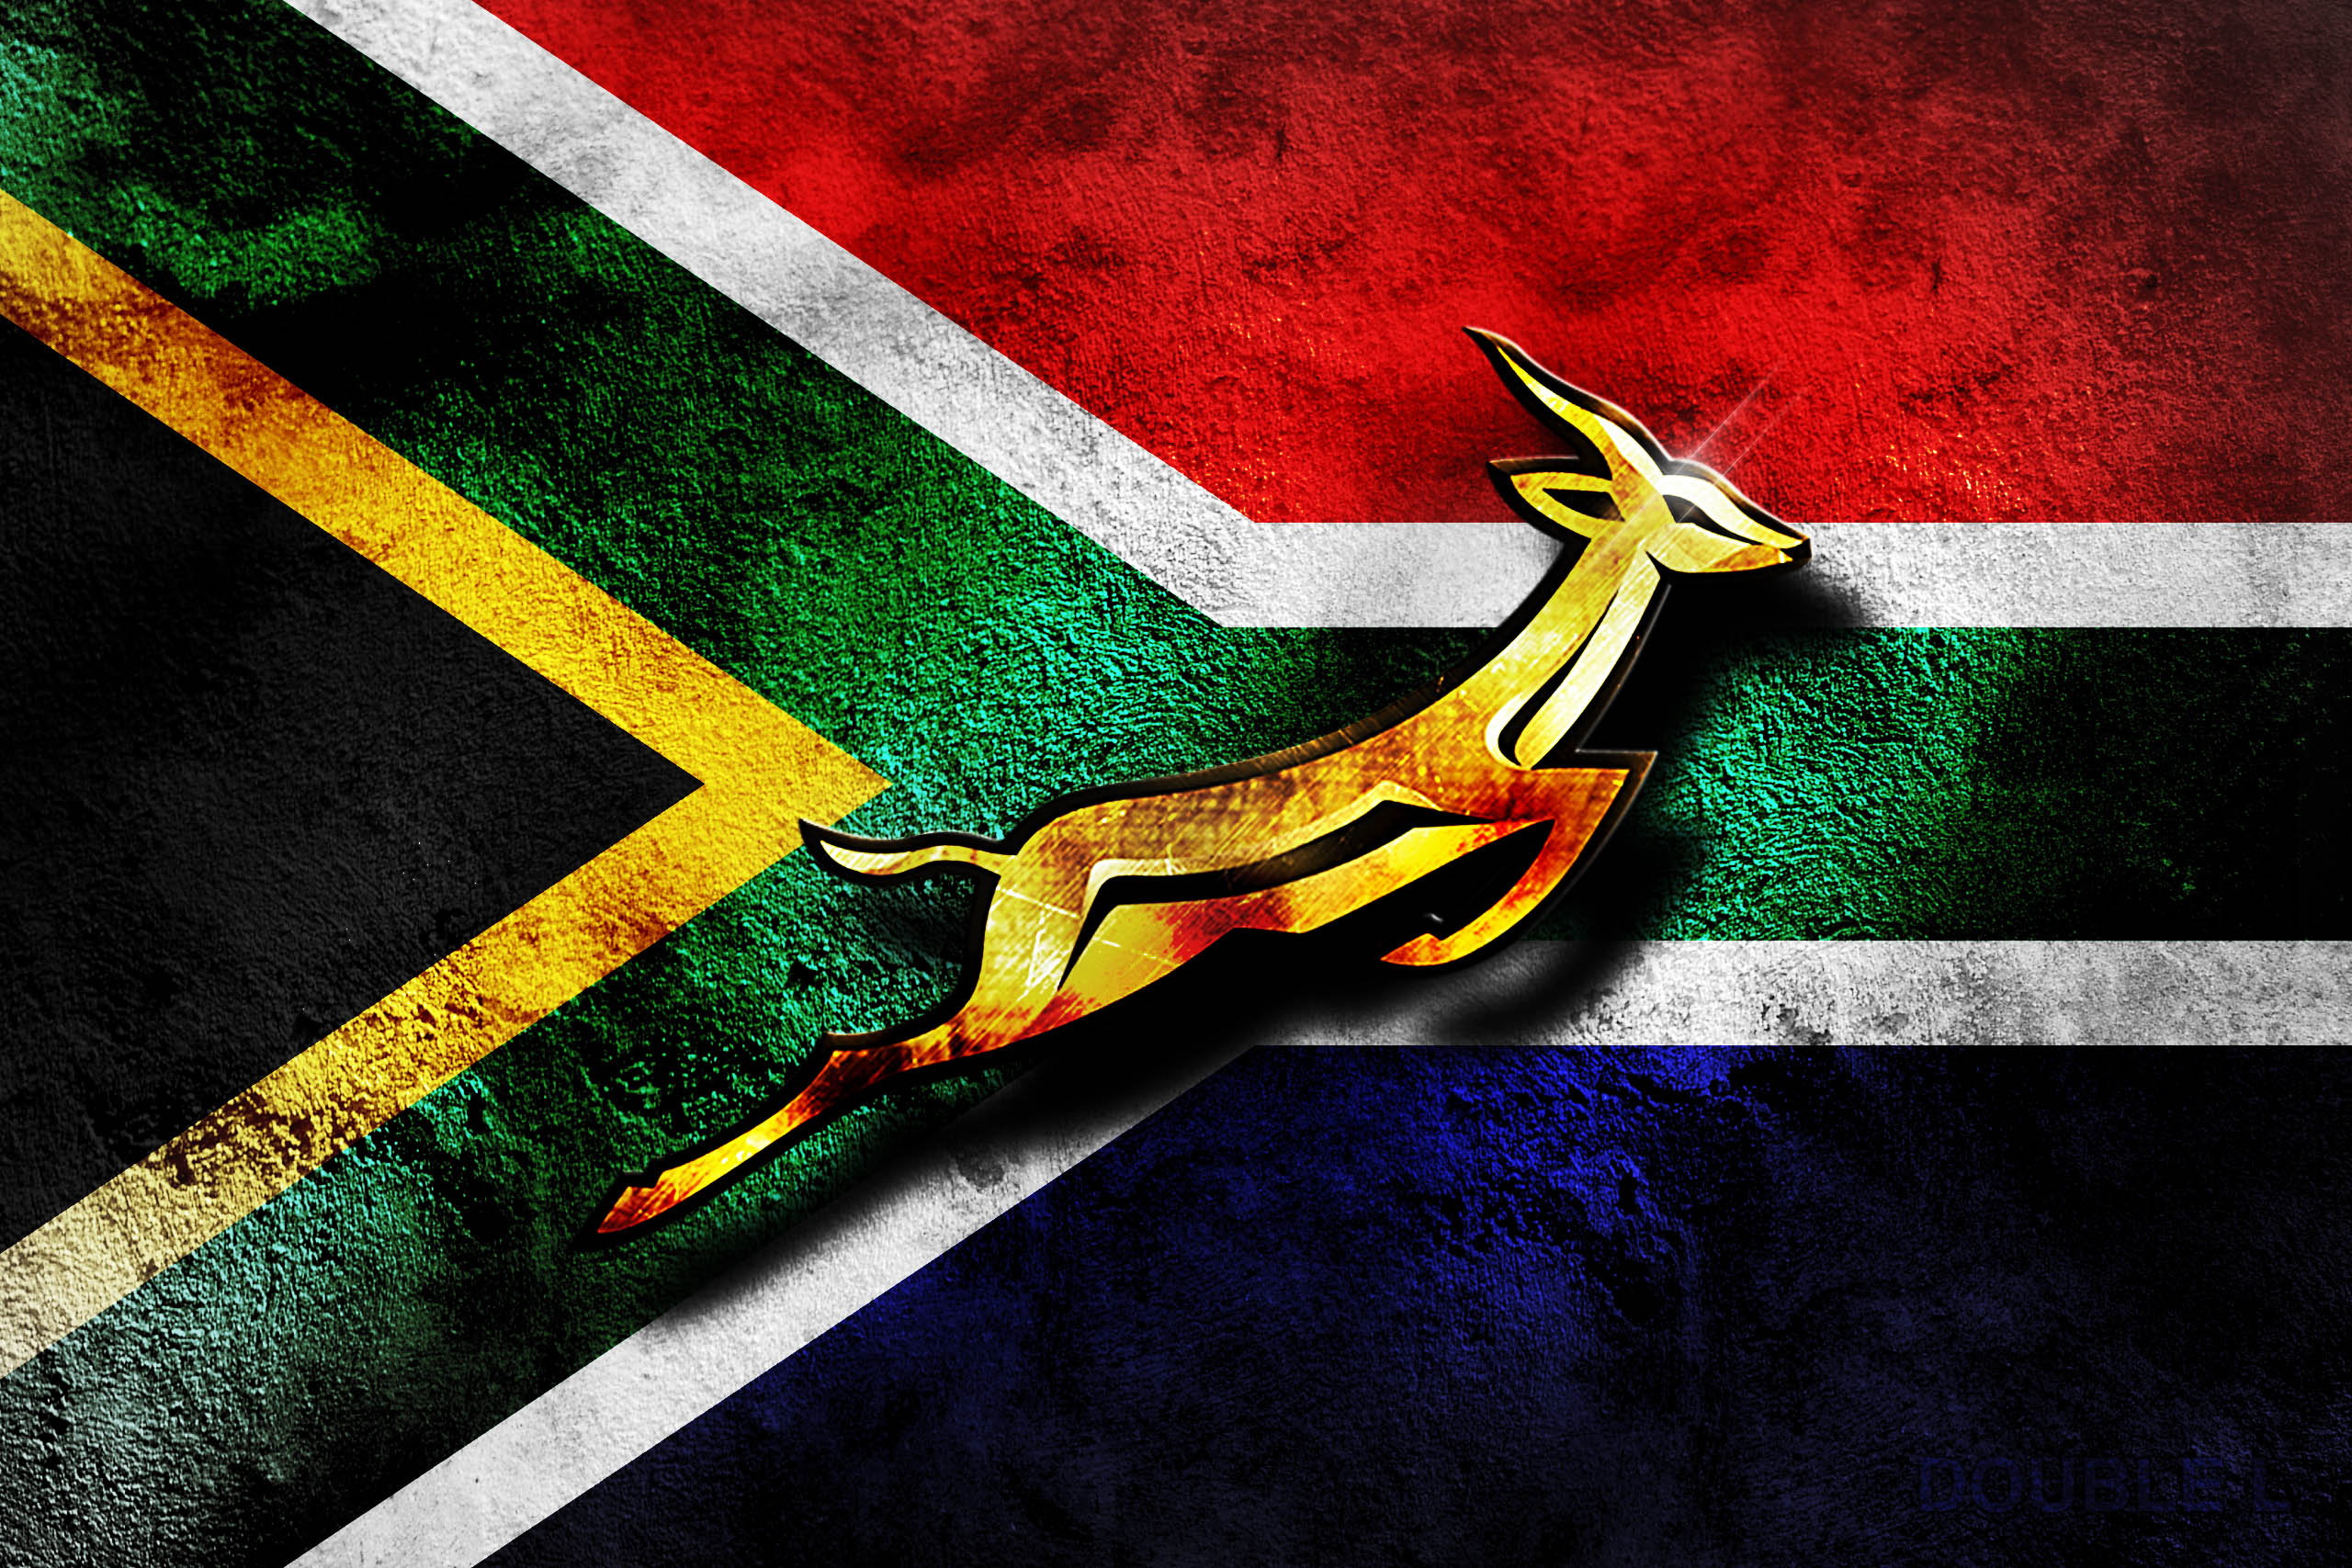 south african flag wallpaper - photo #28